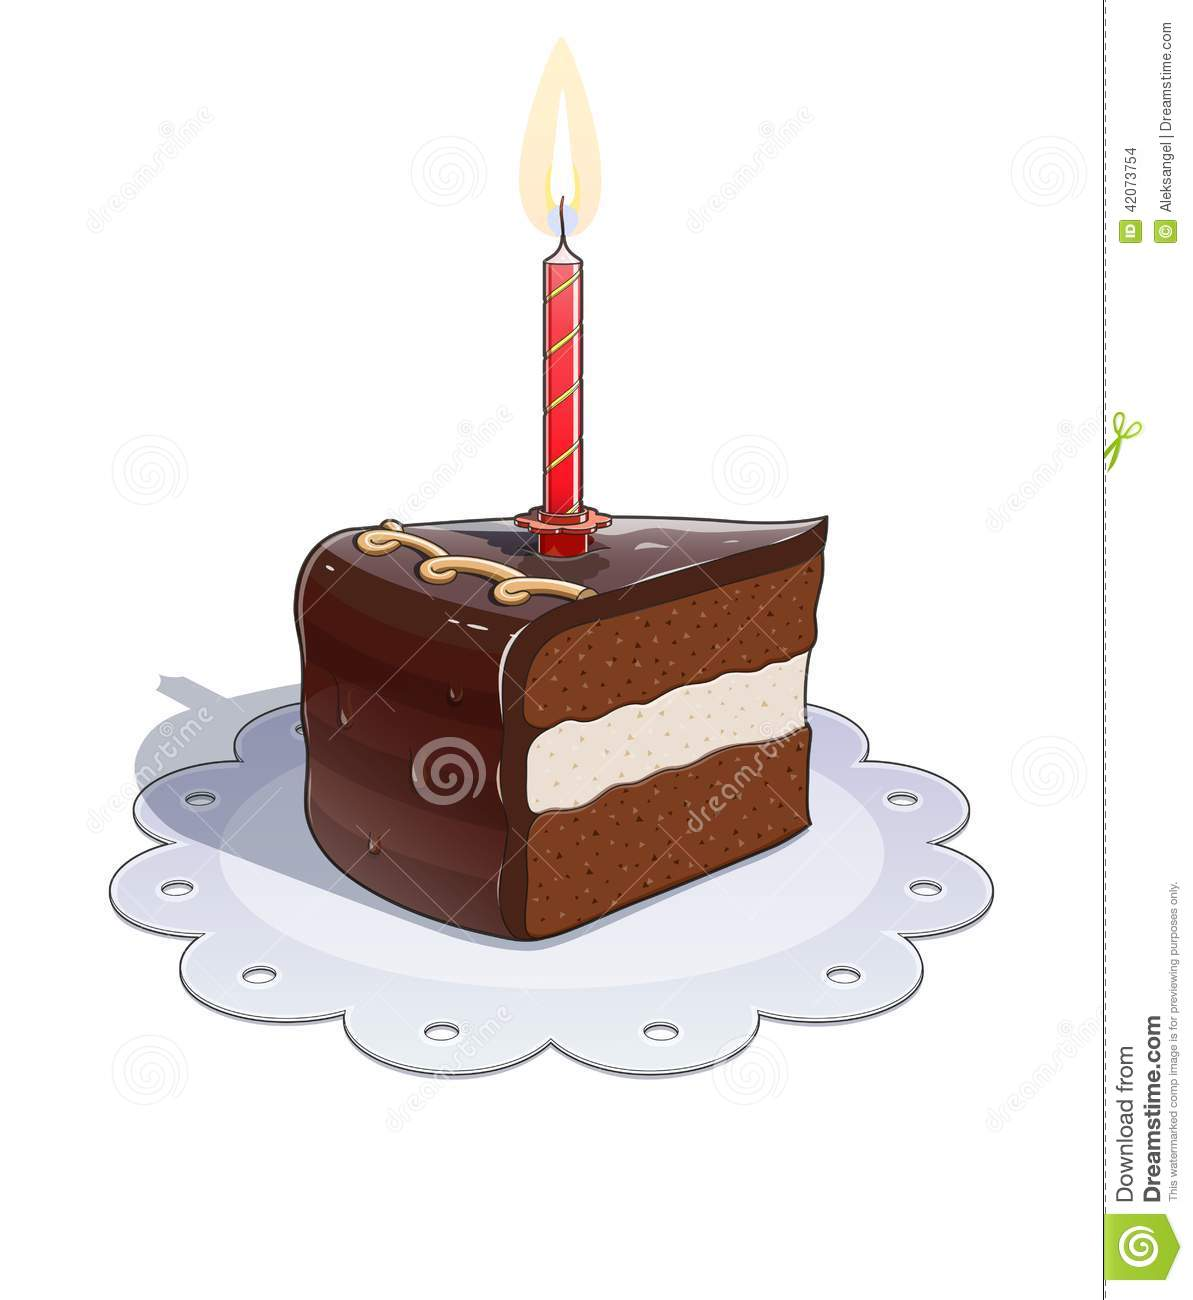 Chocolate Cake Images With Candles